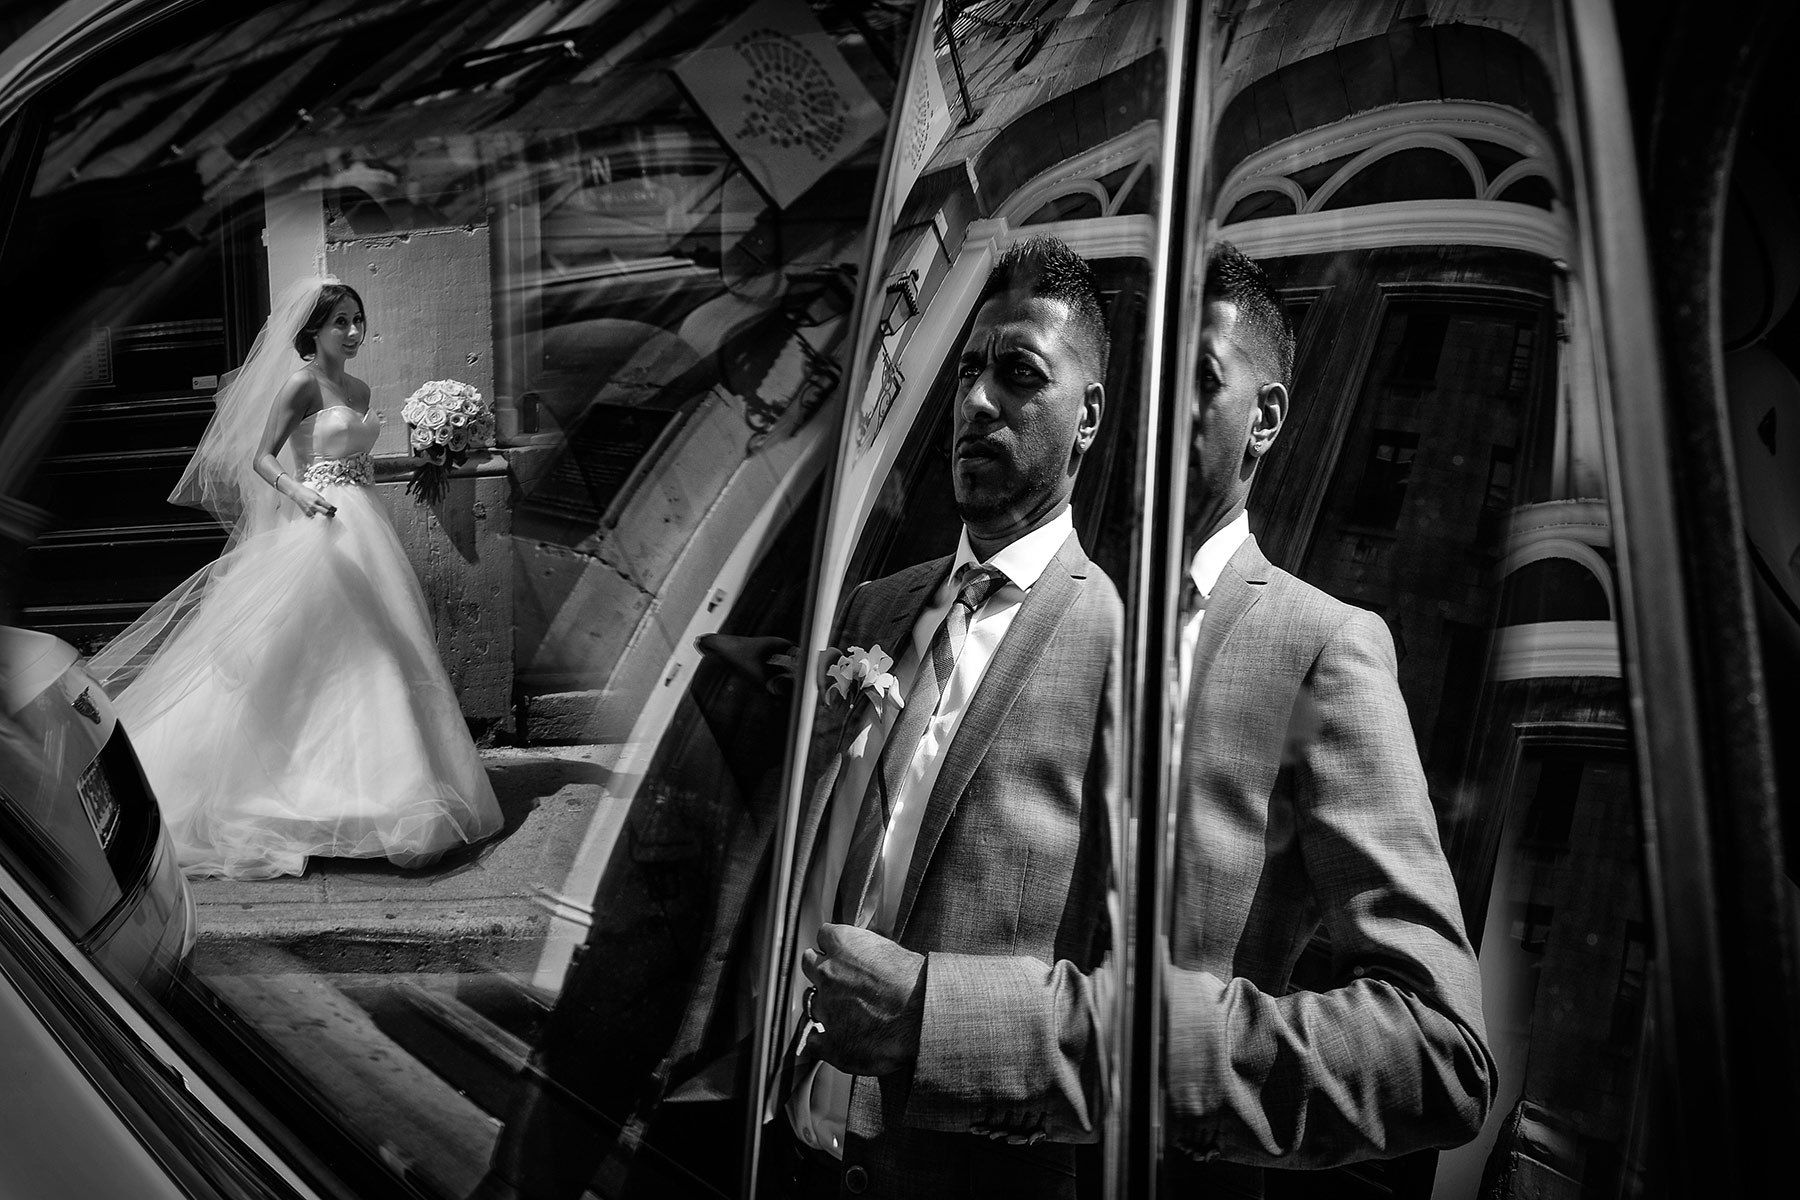 Montreal wedding photographer, reflection of the bride and groom